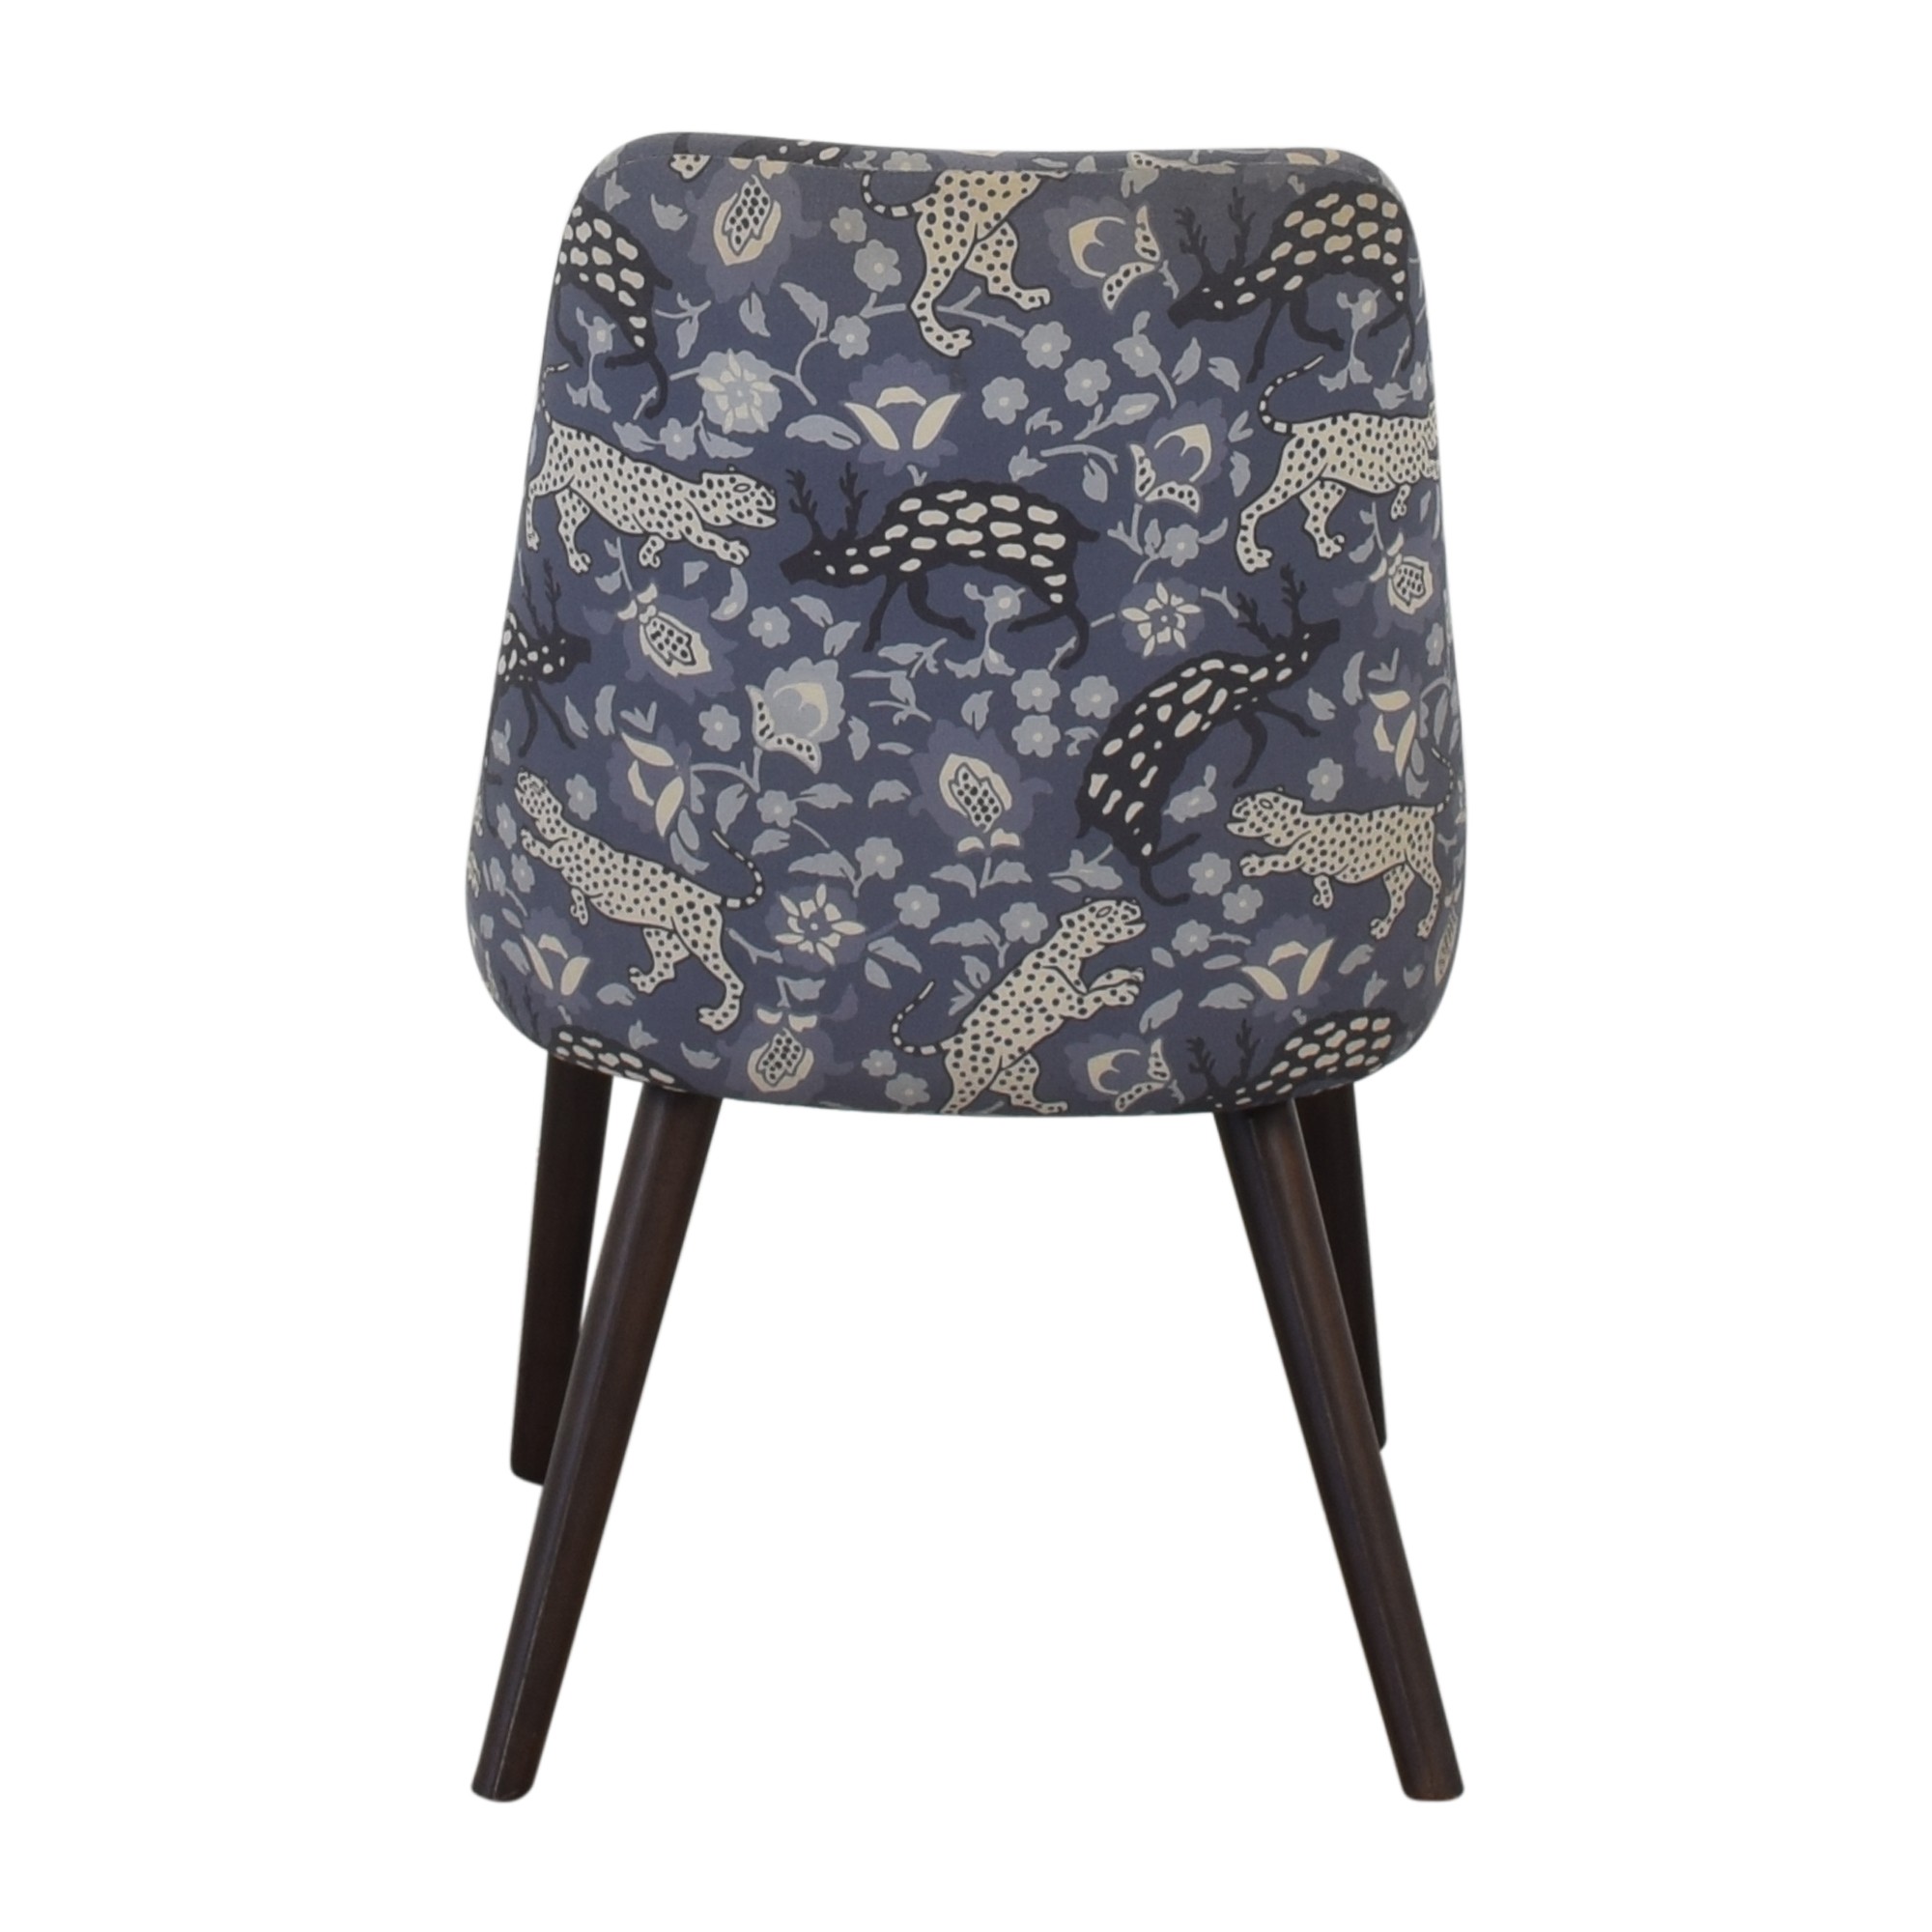 Skyline Furniture Skyline Patterned Upholstered Dining Chair for sale